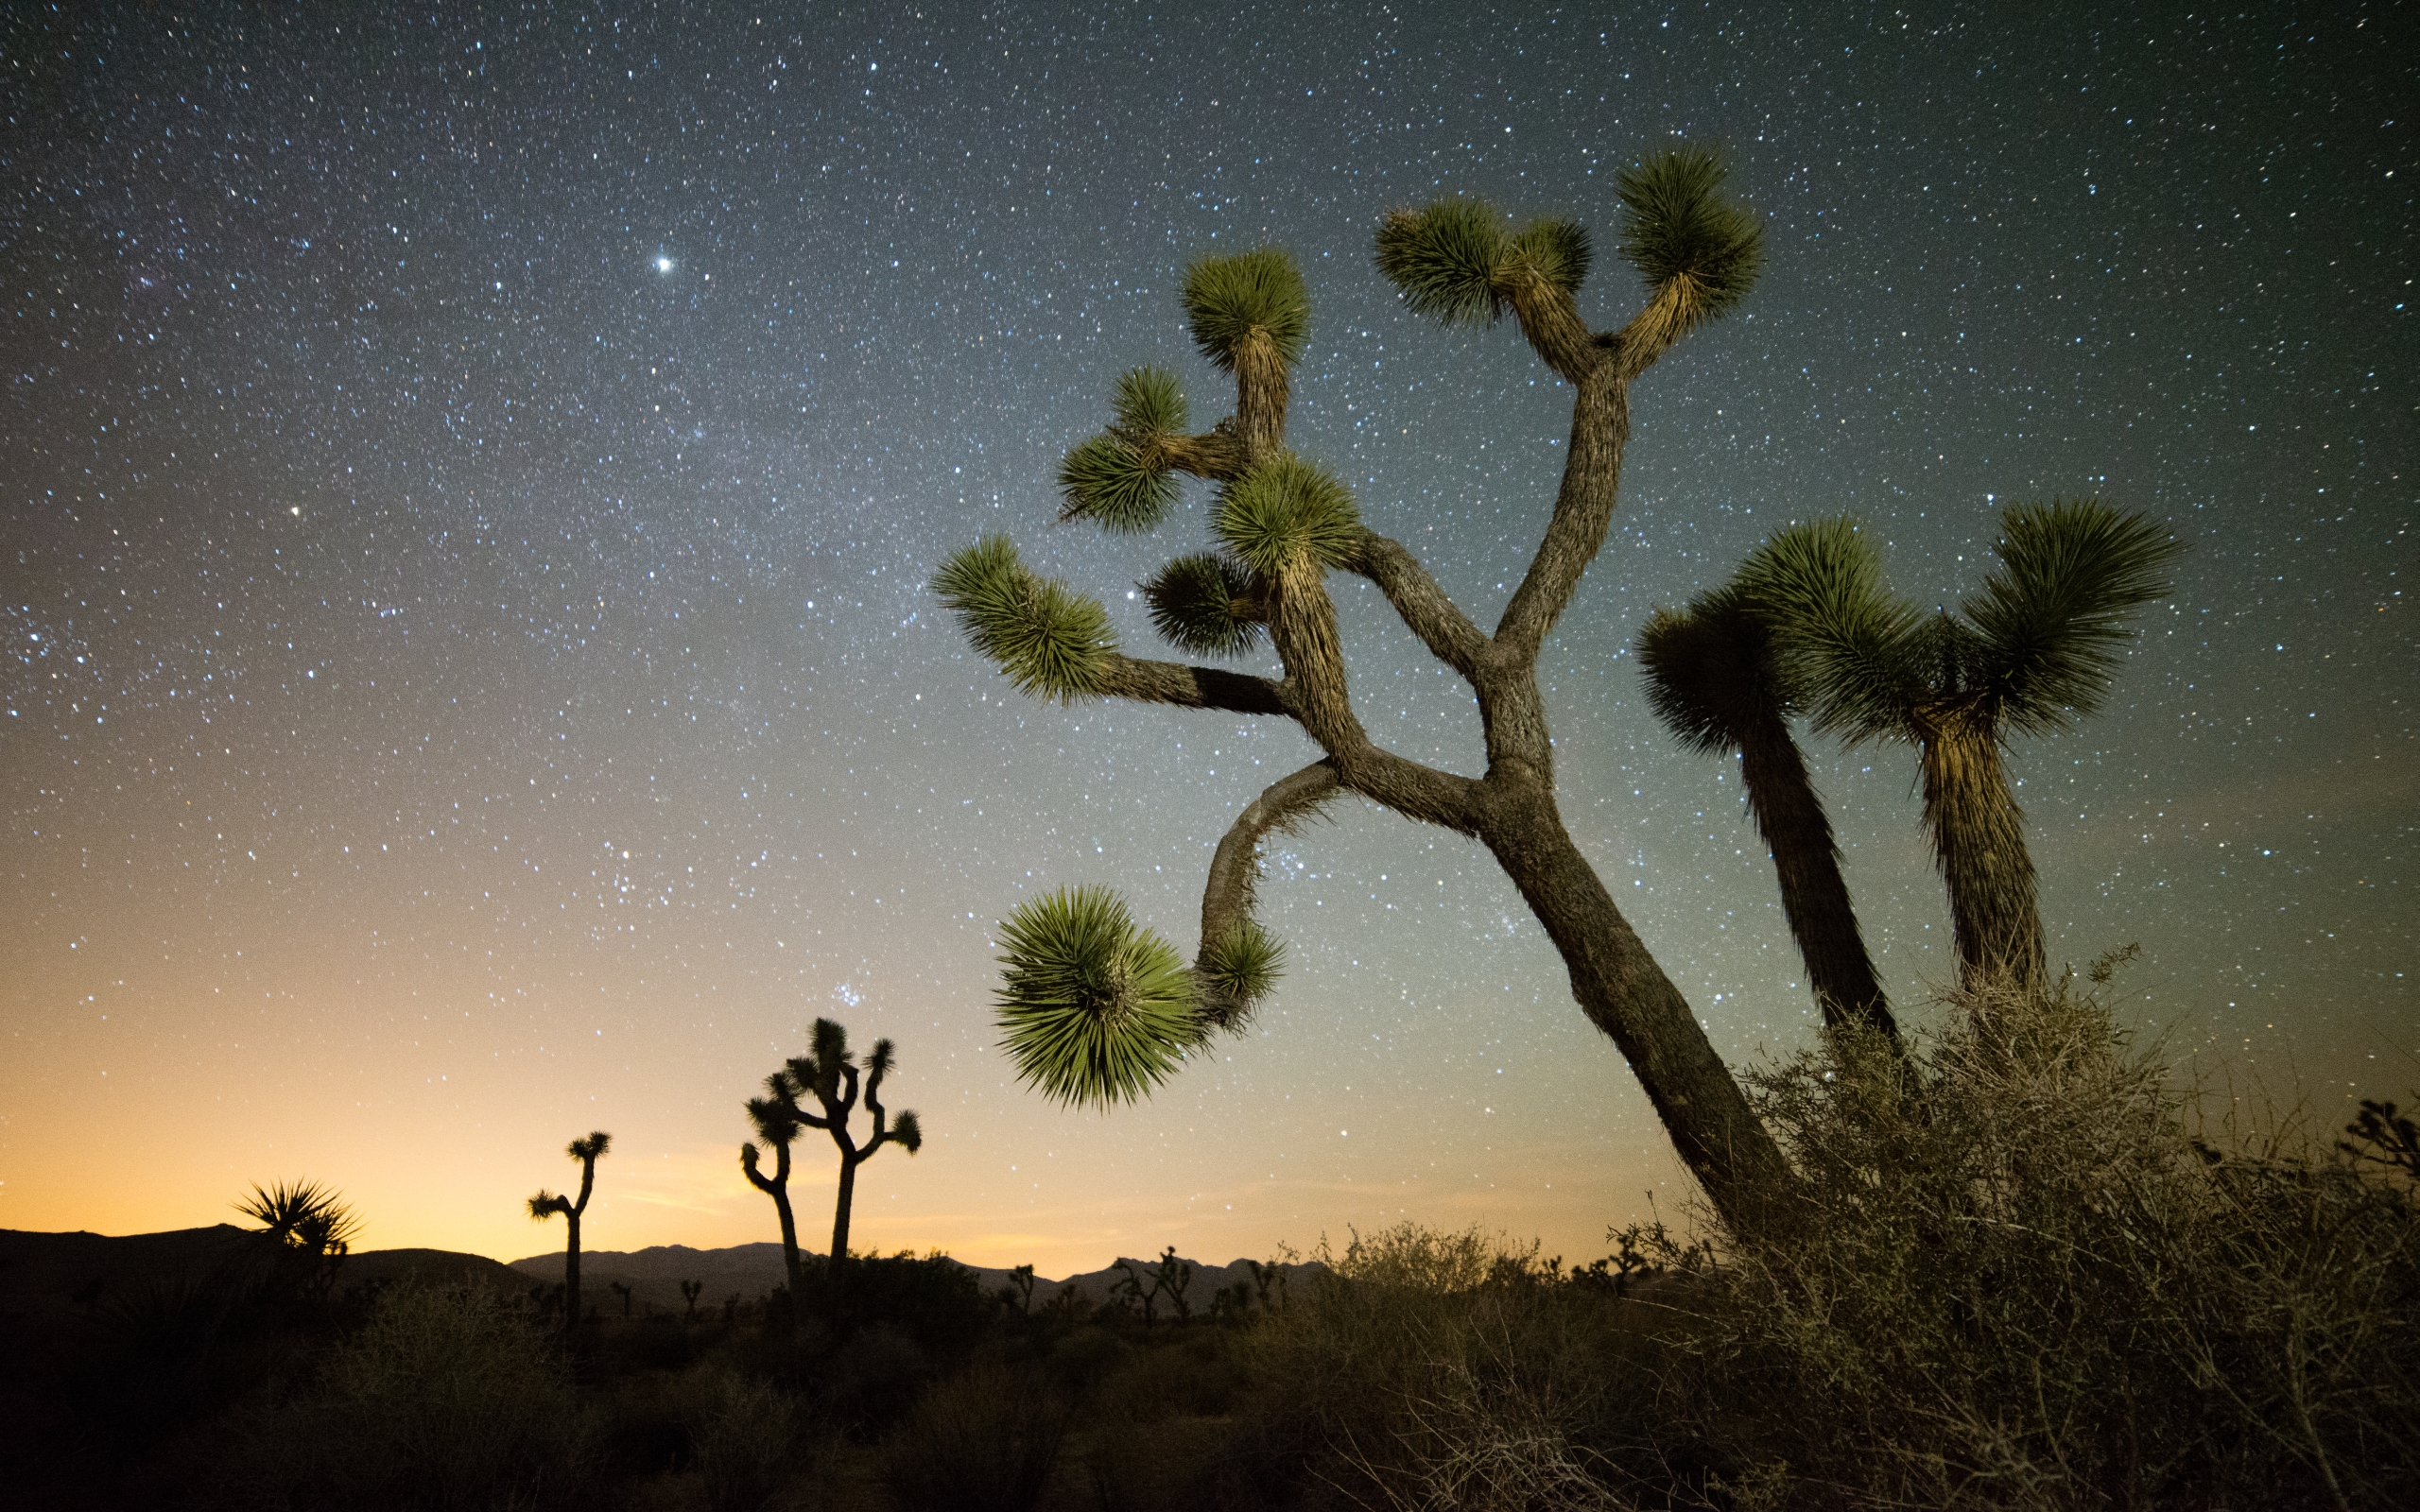 joshua tree night wallpaper background 53122